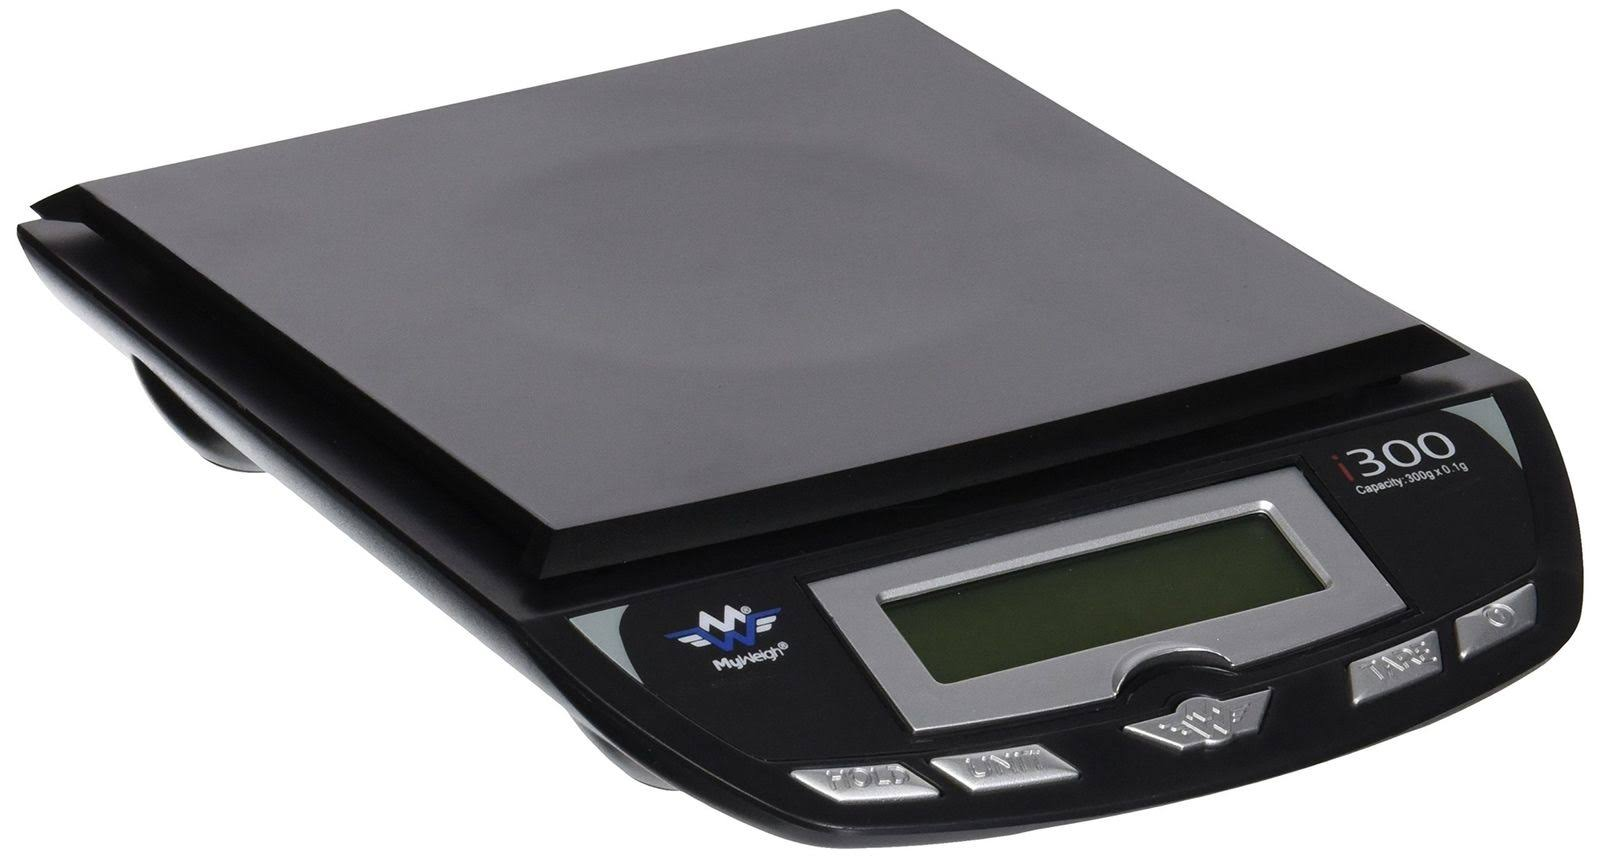 My Weigh Ibalance 300 Digital Jewelry Scale - Black